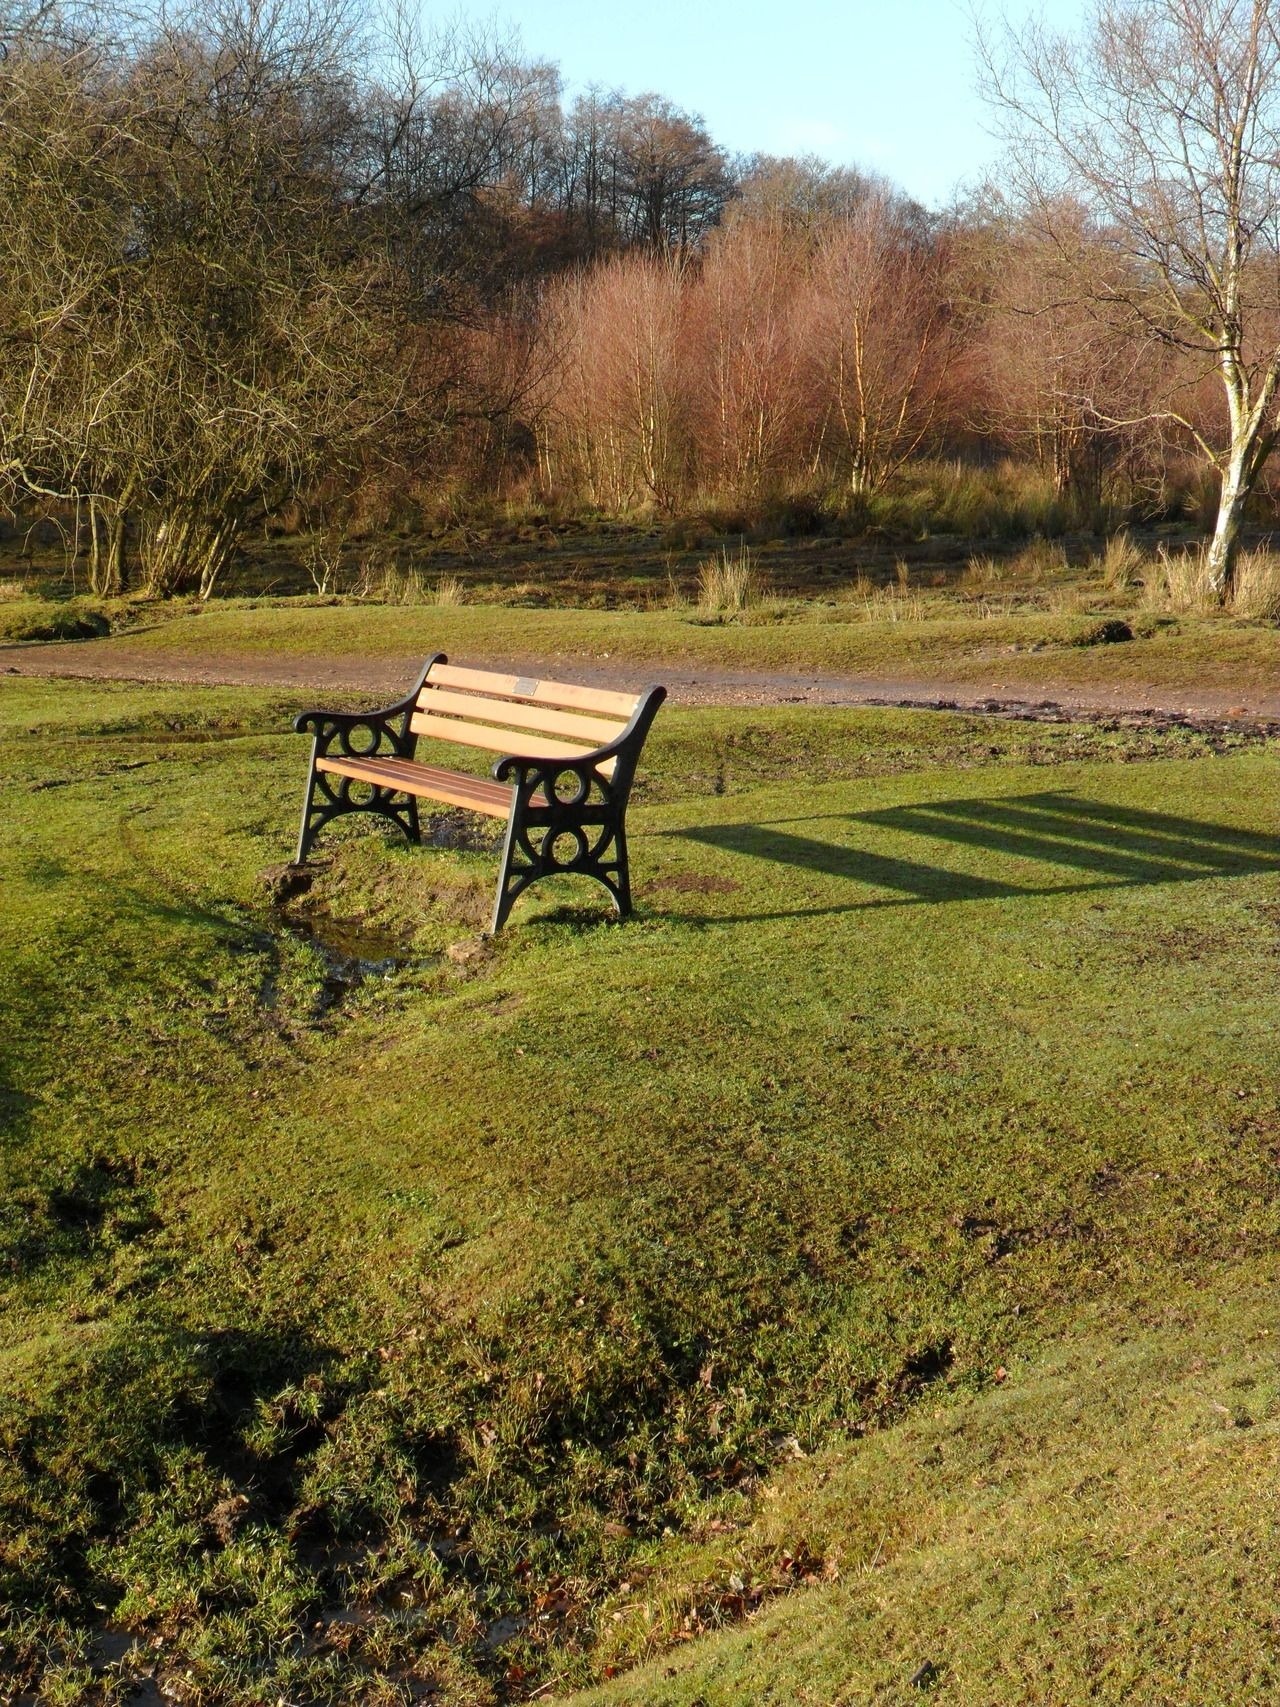 Bench in the winter sunshine at Little Bracebridge Pool, Sutton Coldfield, England